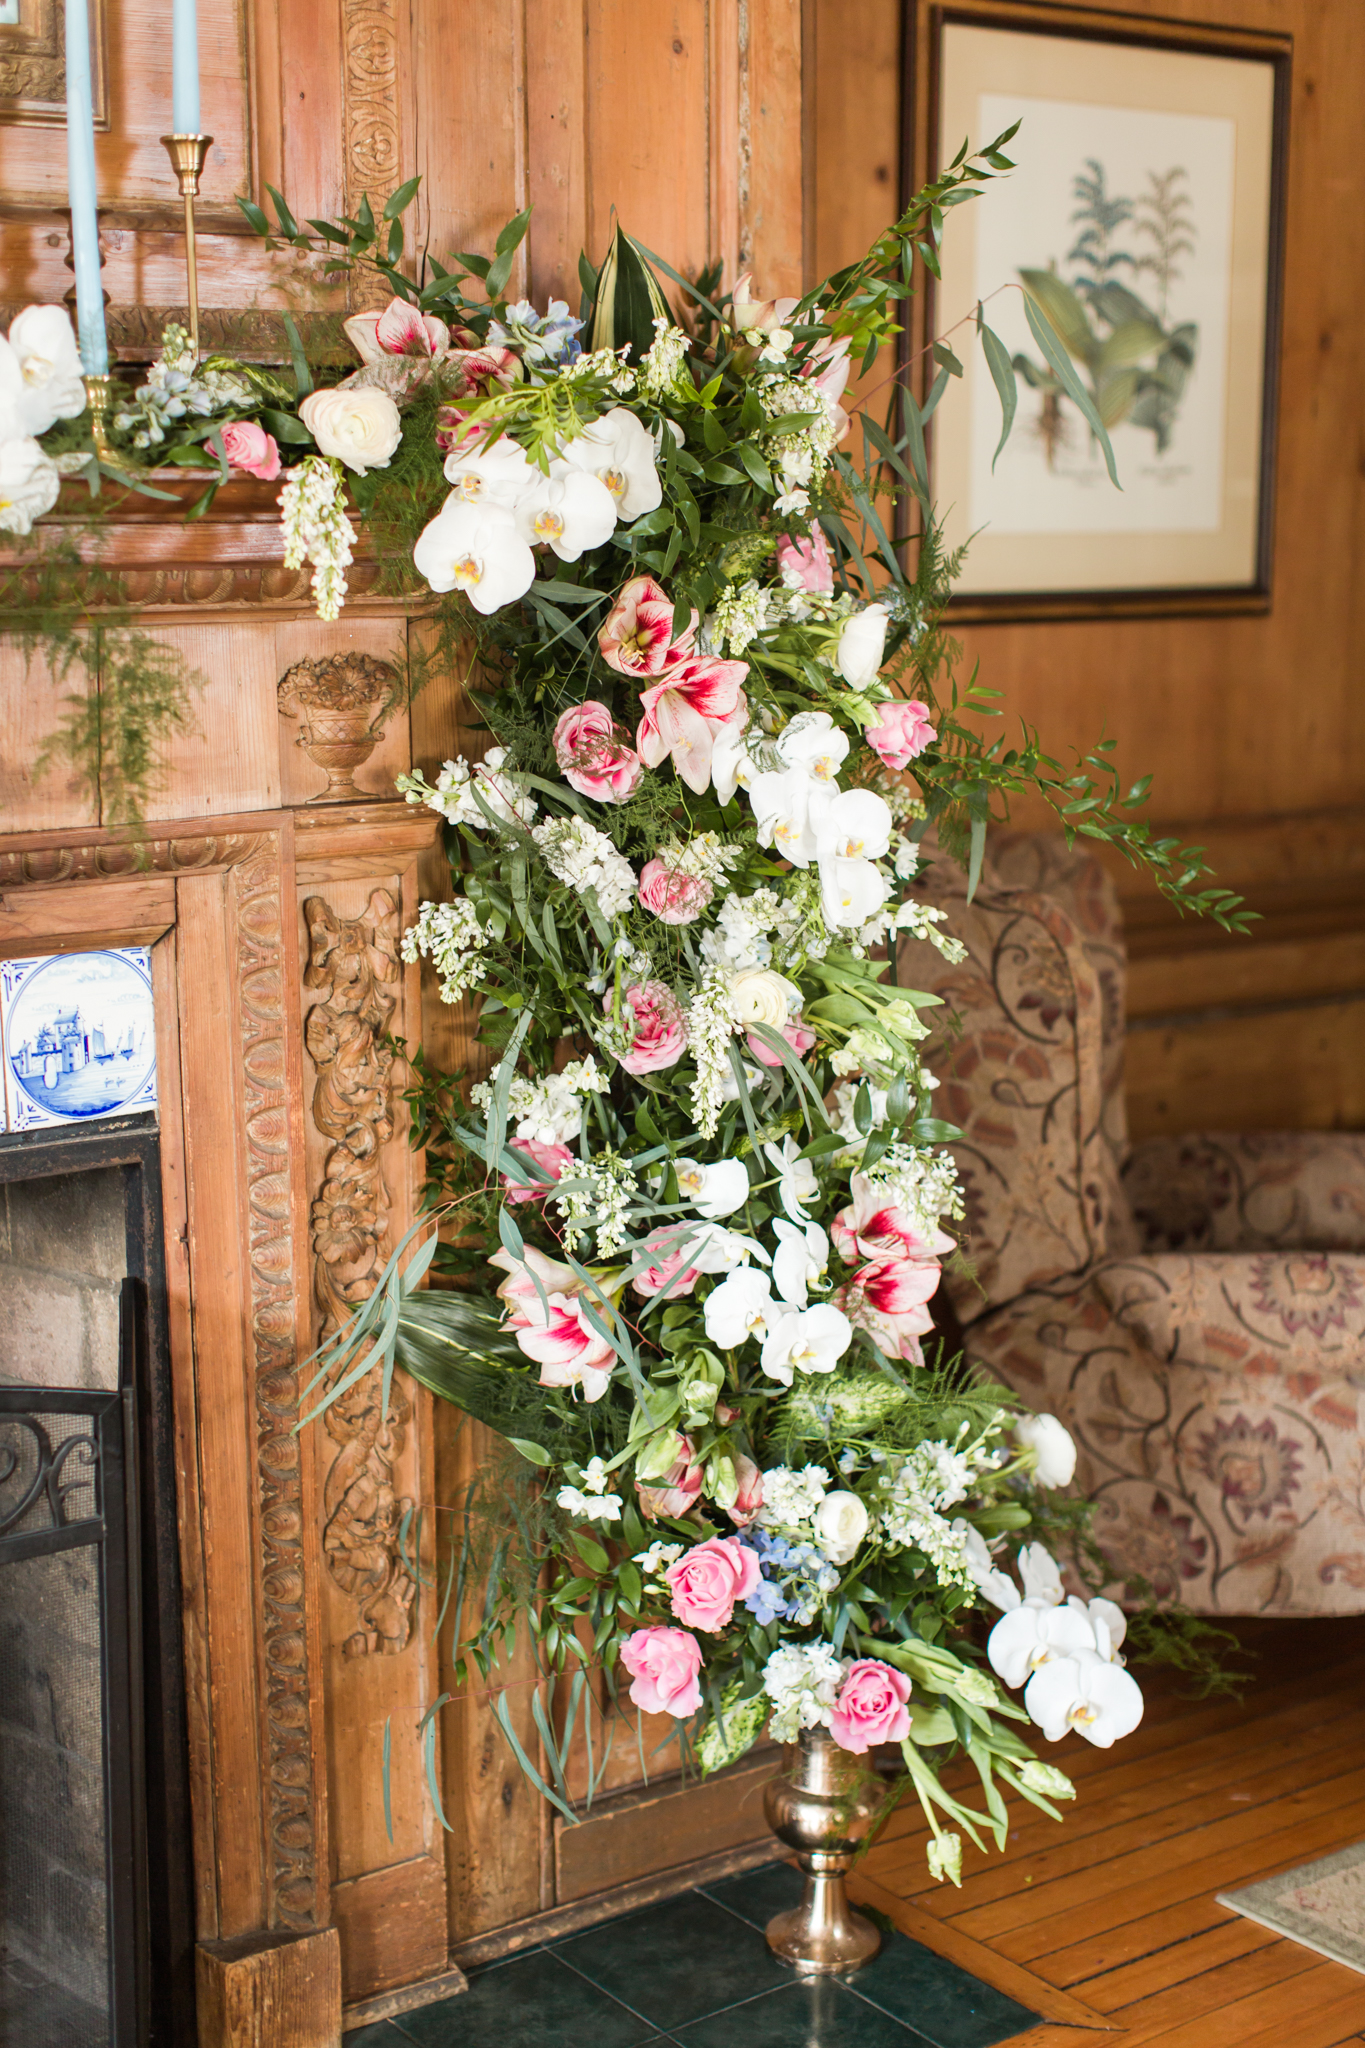 Lush greens, pinks and white orchids arching up a candle light fire place for an intimate ceremony at the Haley Mansion in Mystic Connecticut - Pearl Weddings & Events